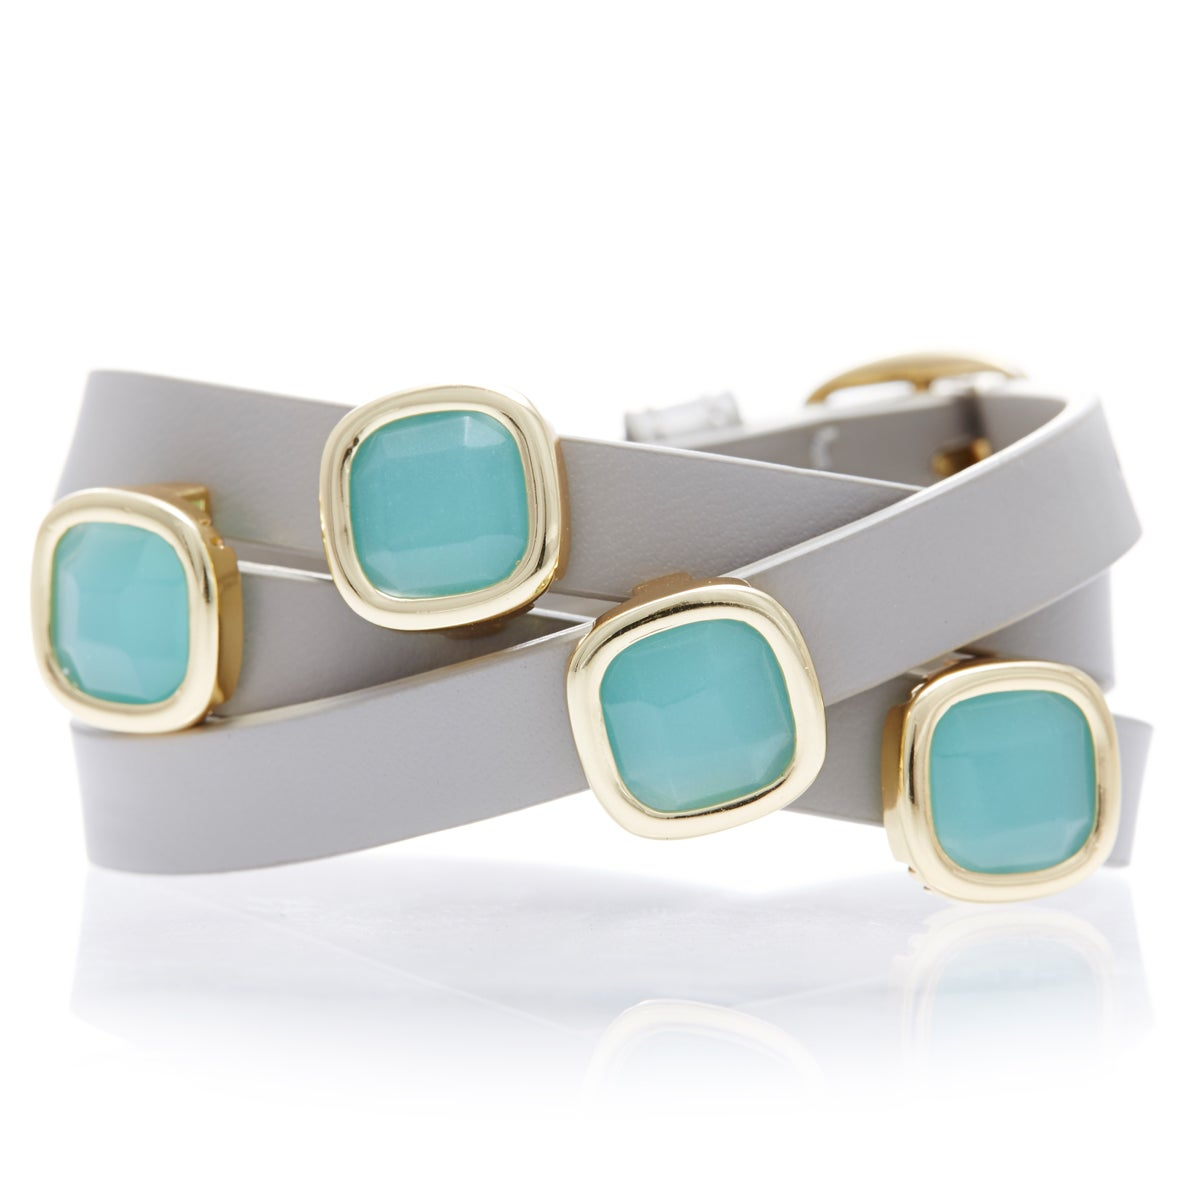 Alchemy Jewelry 18k Goldplated Peru Chalcedony Gemstone Leather Wrap Bracelet